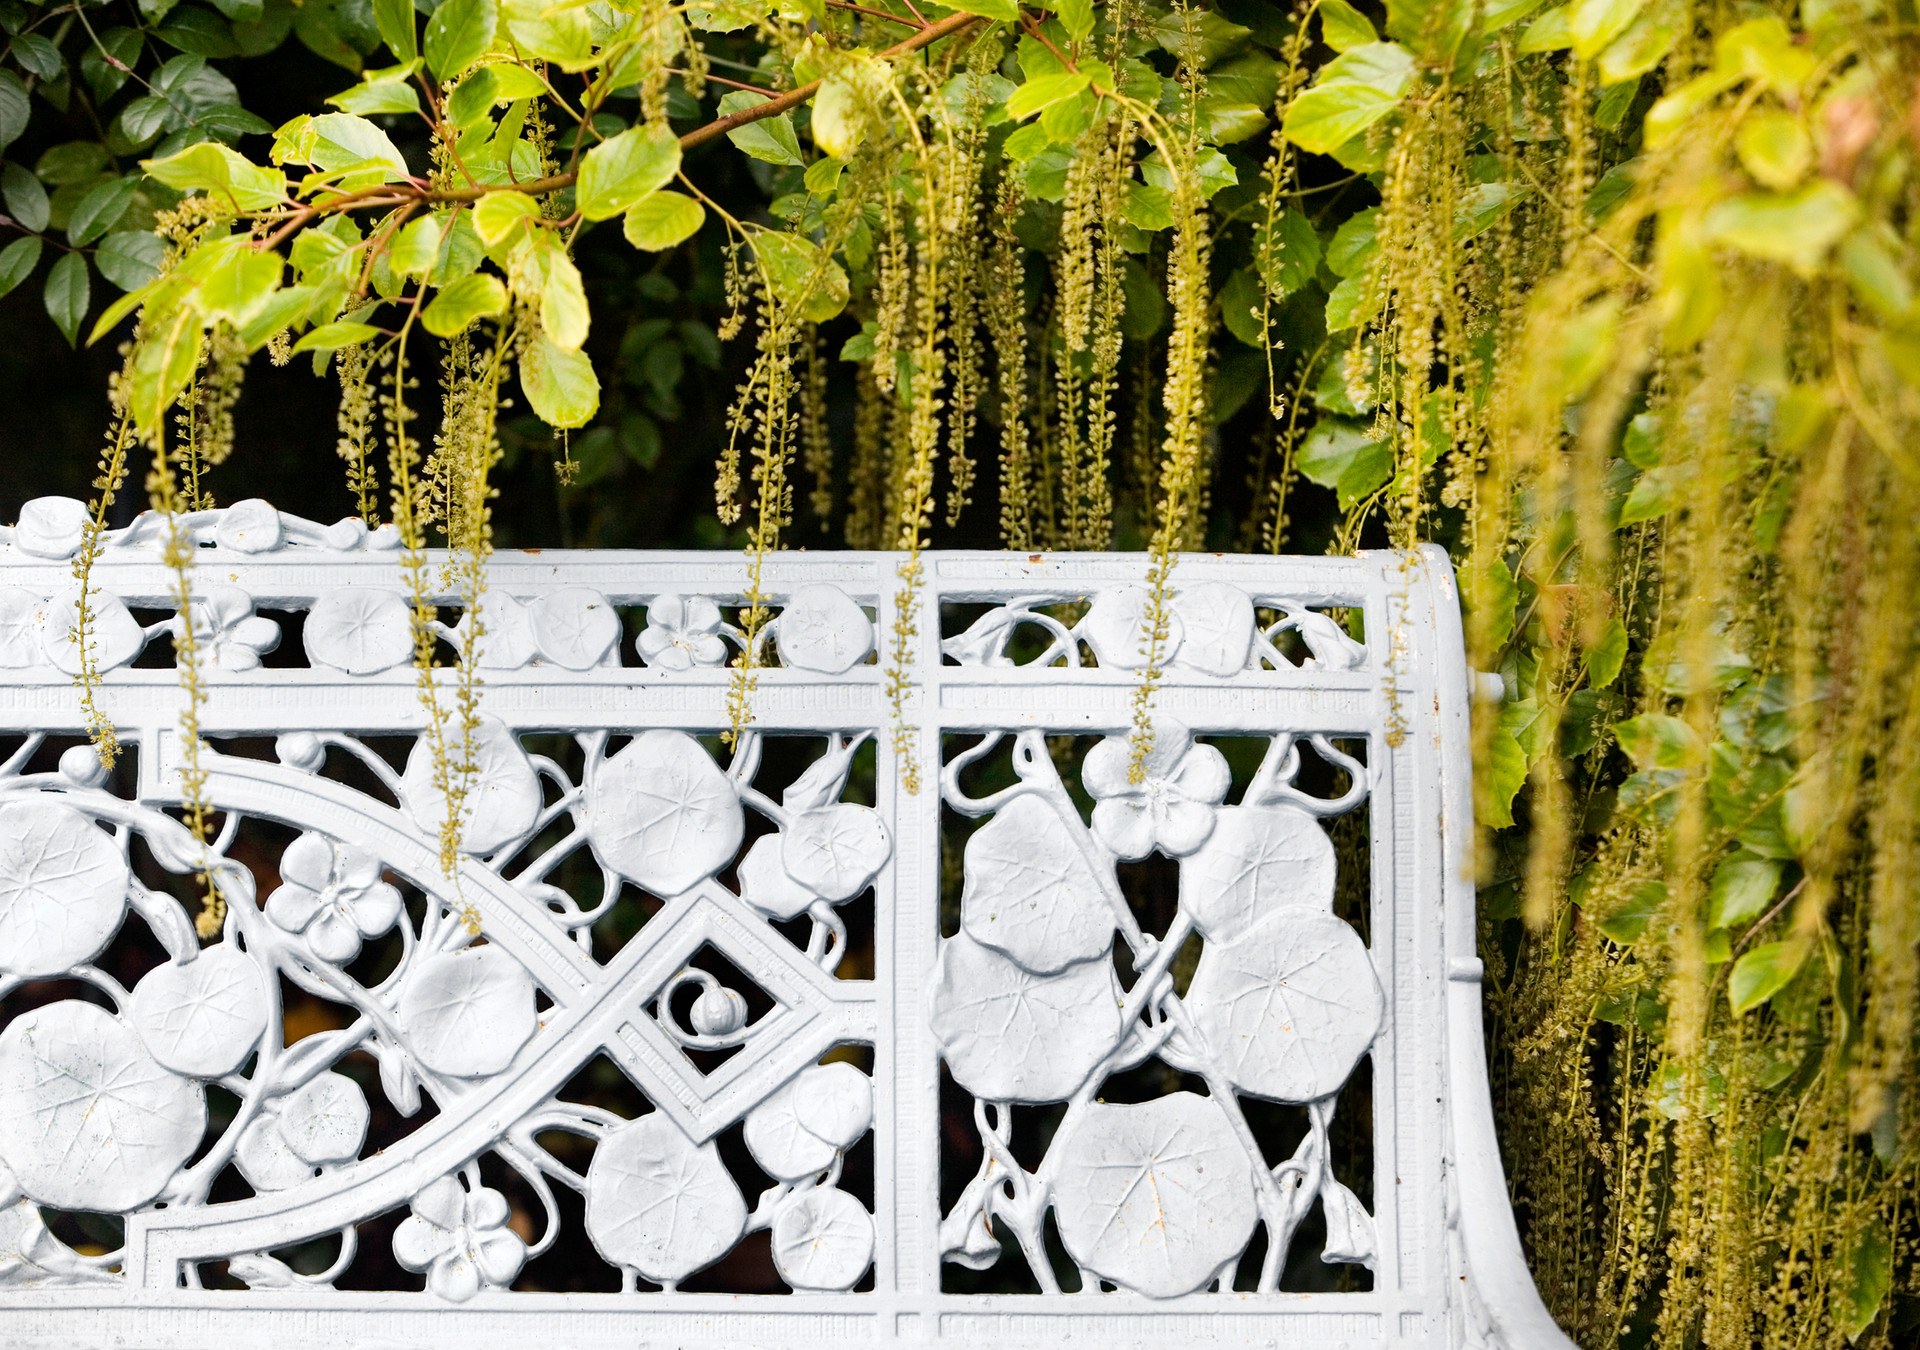 Bench and amaranthus